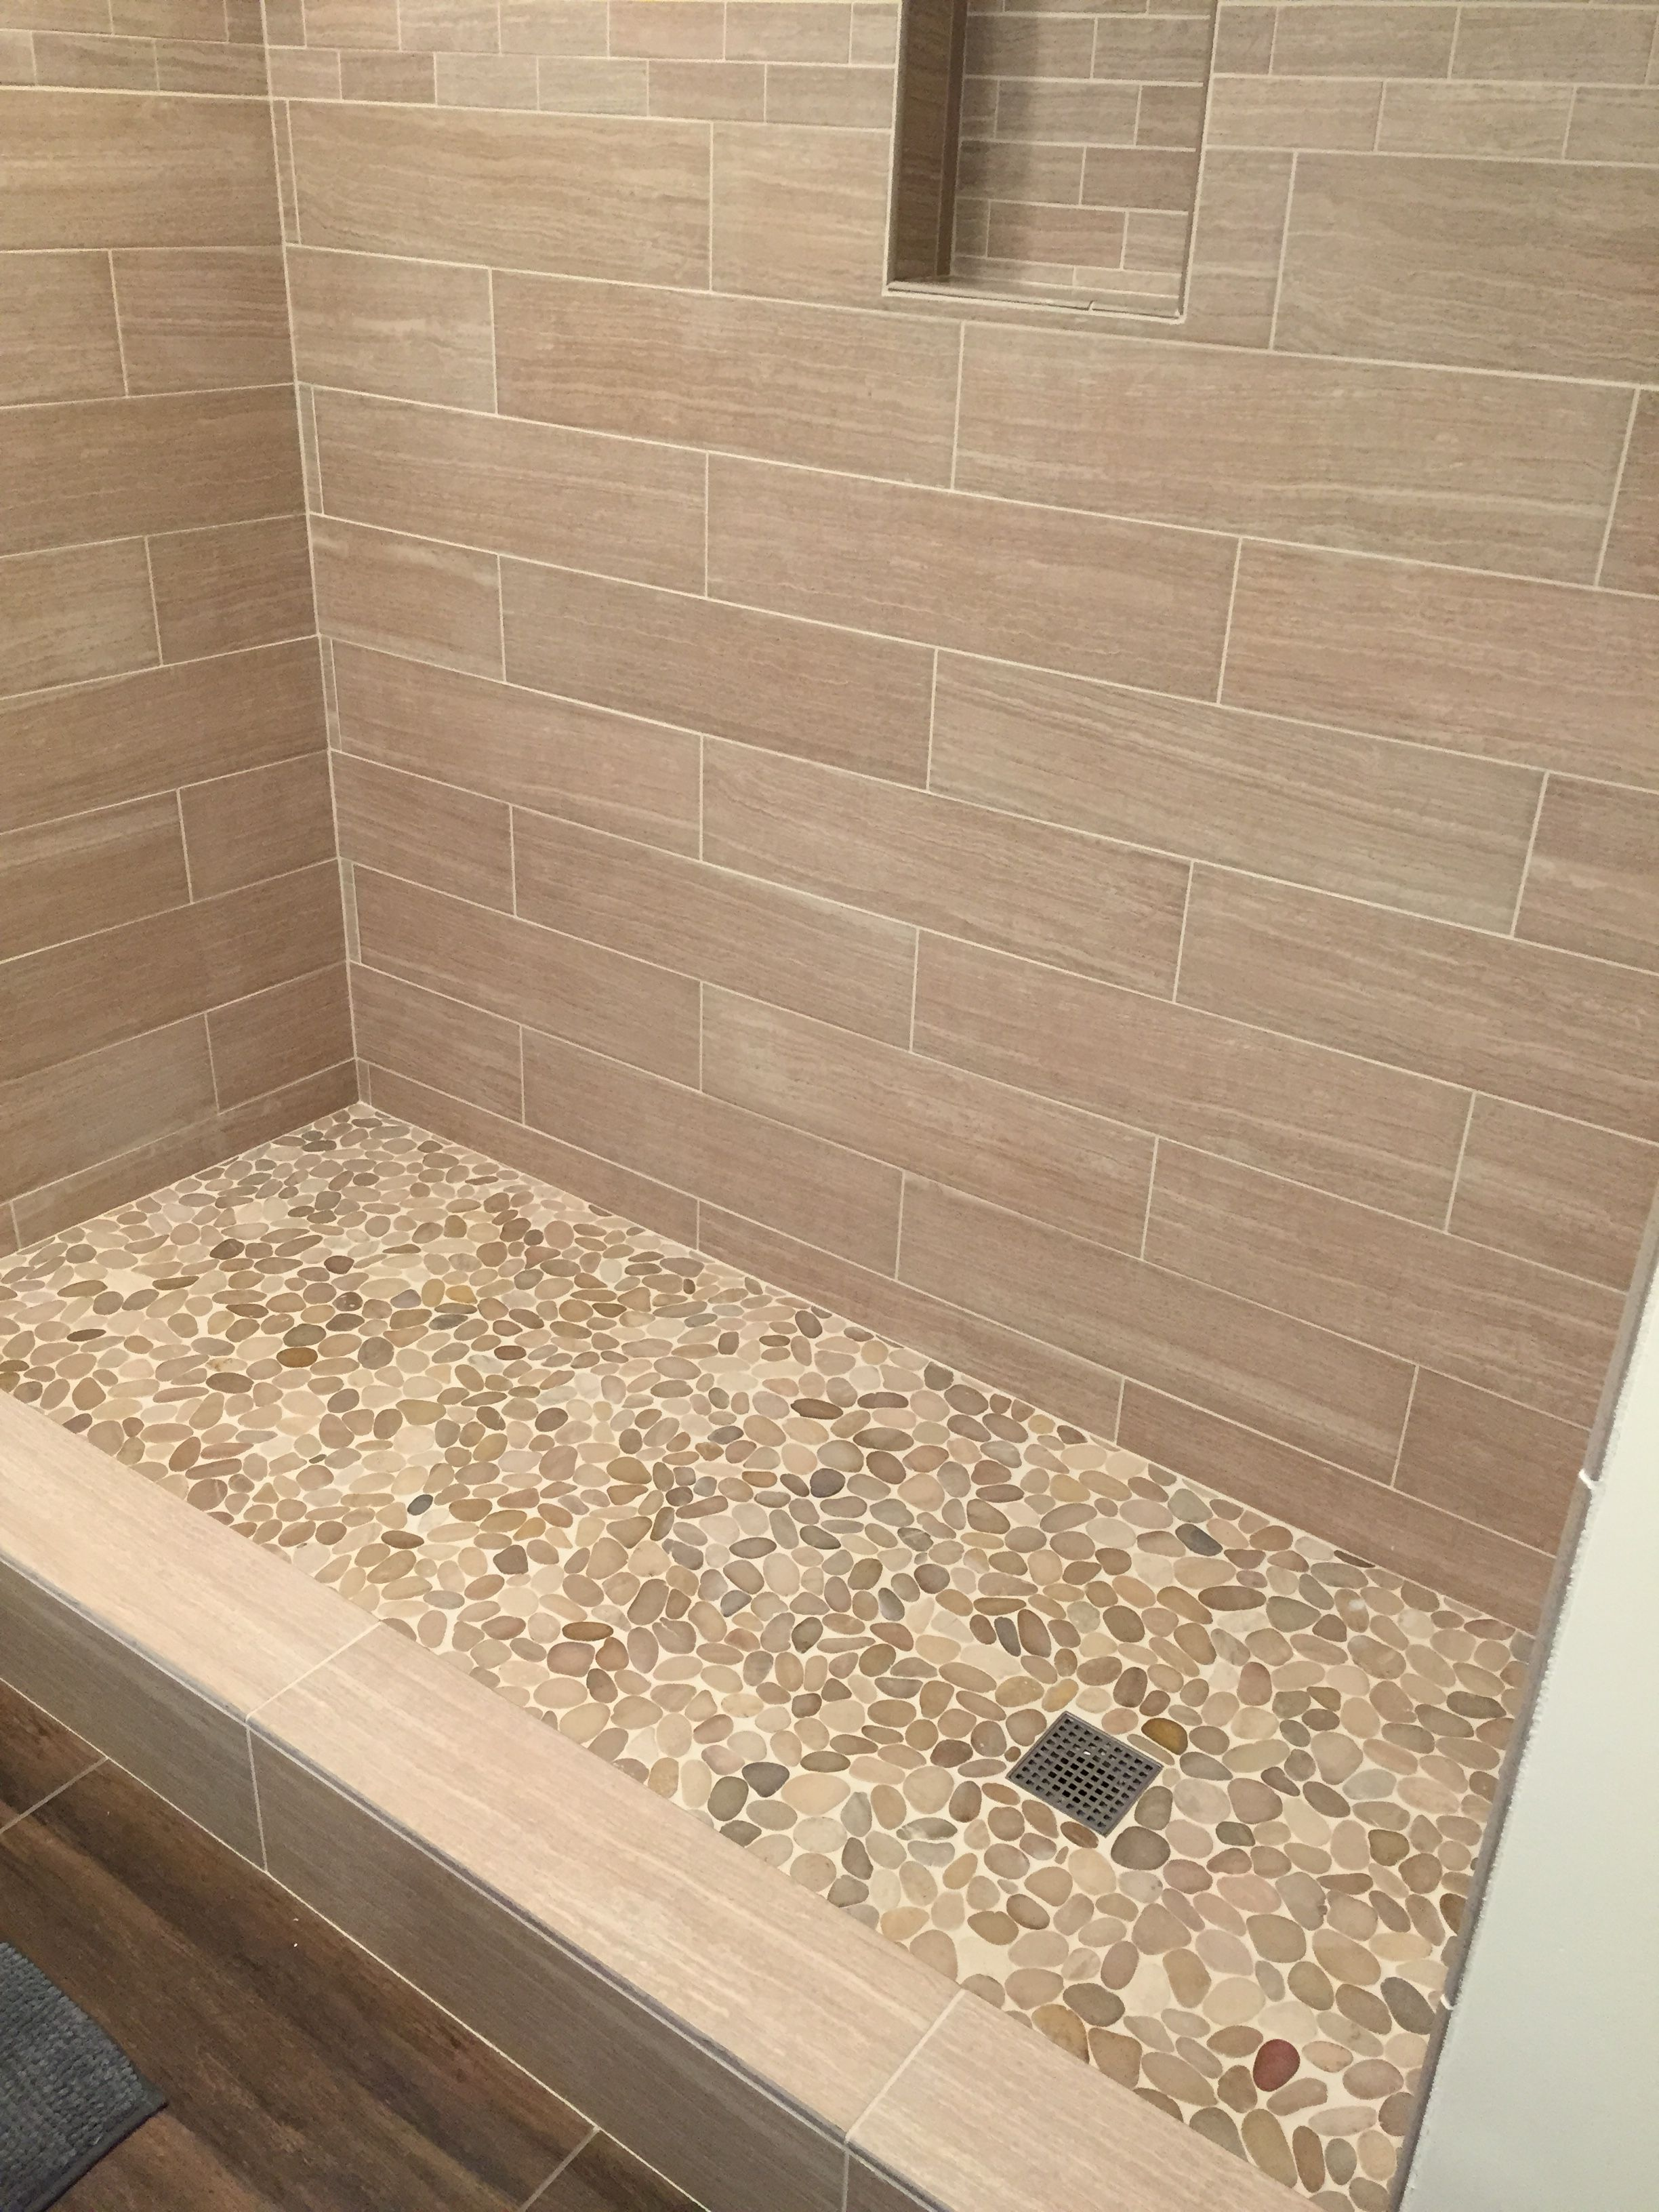 Sliced Java Tan Pebble Tile Pebble Tile Shower Pebble Tile